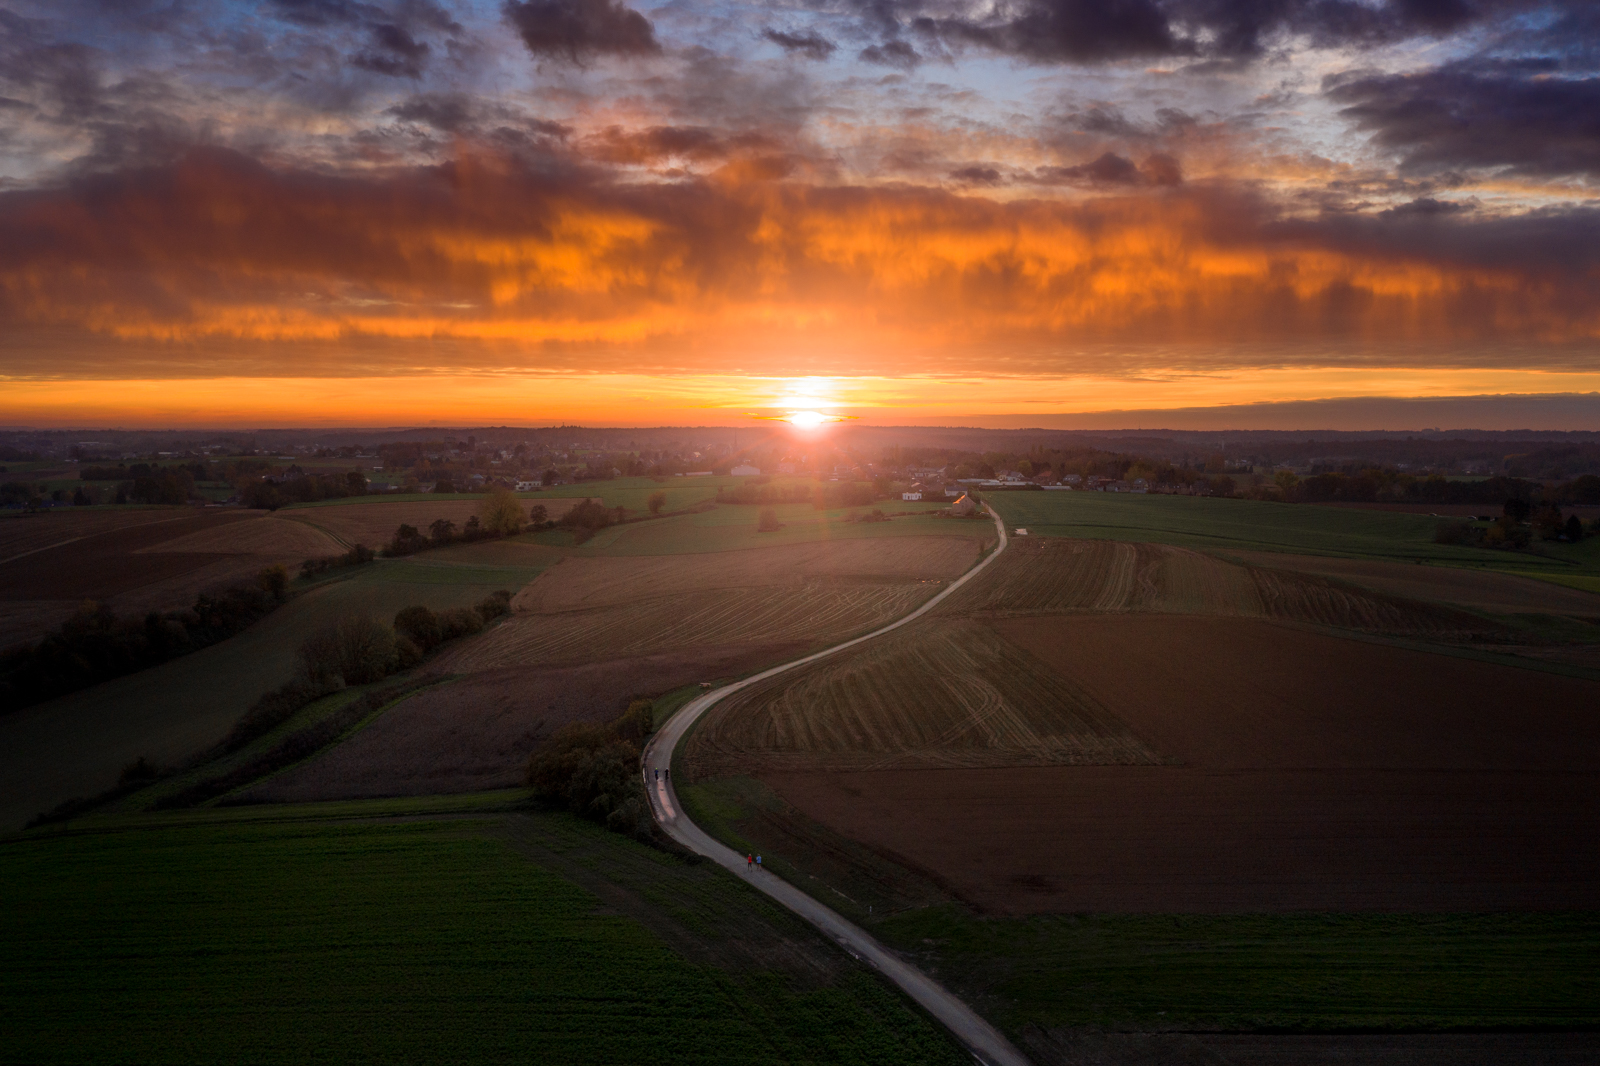 Fiery sunset over the bike path to Vossem, Belgium